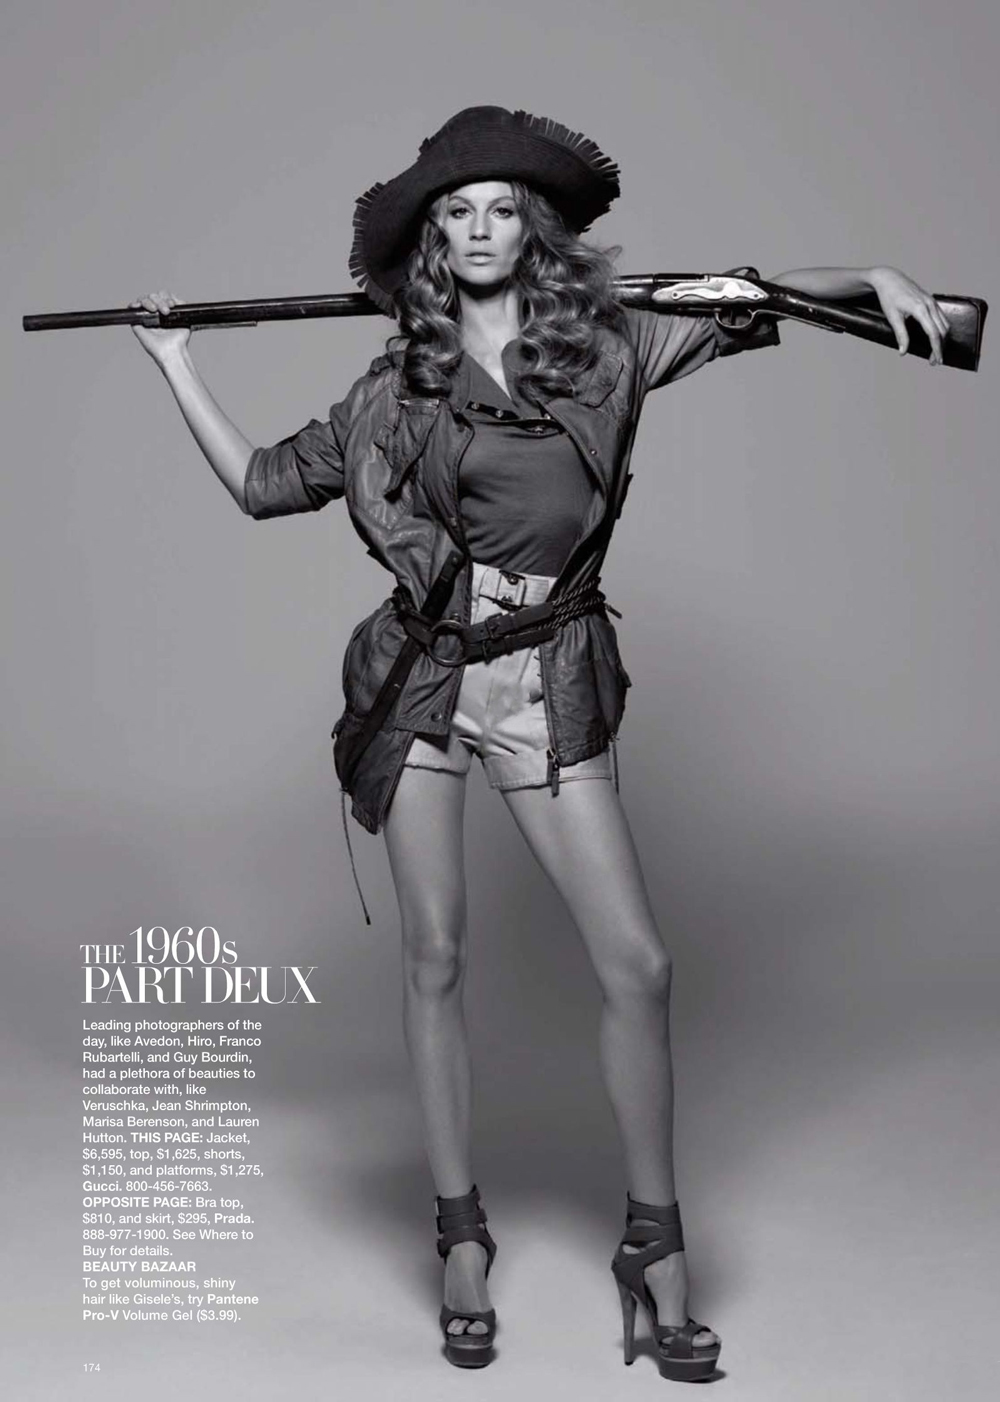 Gisele Bundchen posing as Veruschka from the past photographed by Peter Lindbergh and styled by Katie Mossman for Gisele: supermodel muse / Harper's Bazaar US April 2009 via fashioned by love british fashion blog